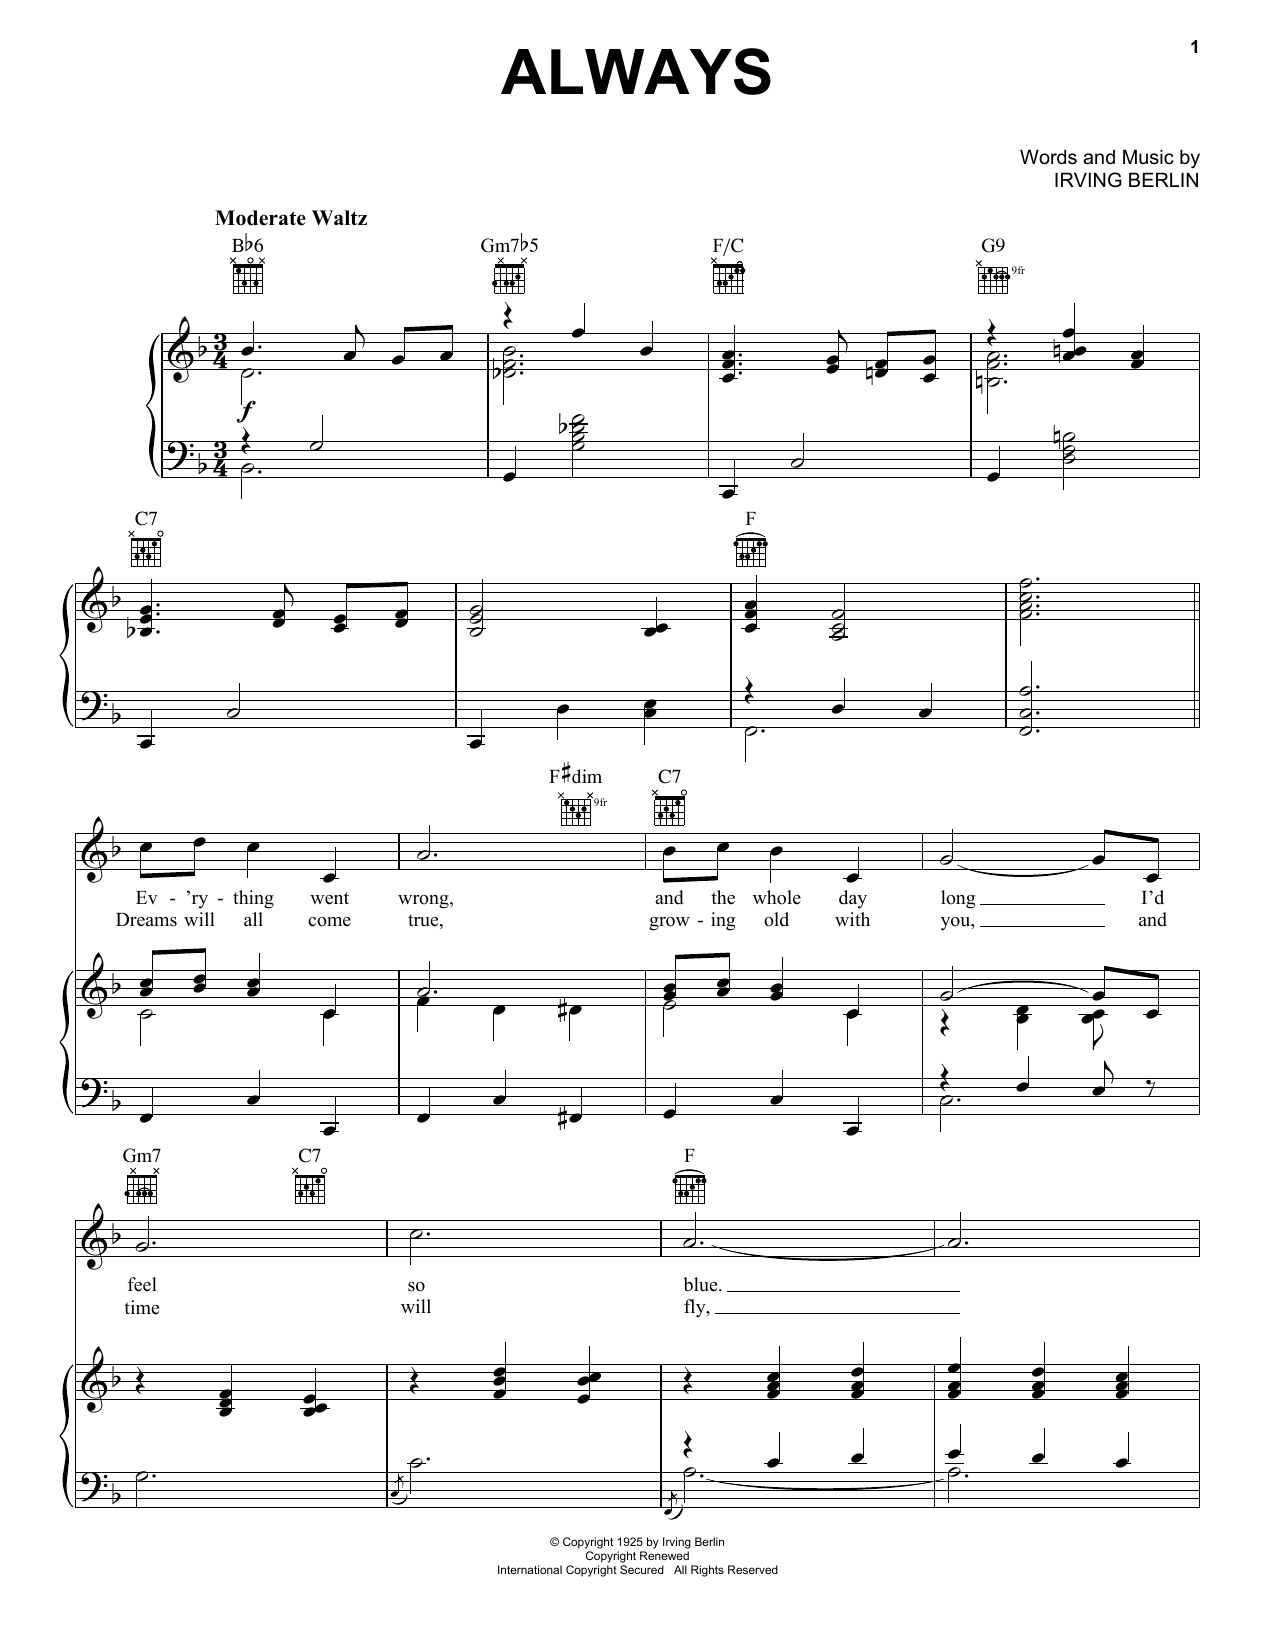 Billie Holiday Always sheet music notes and chords